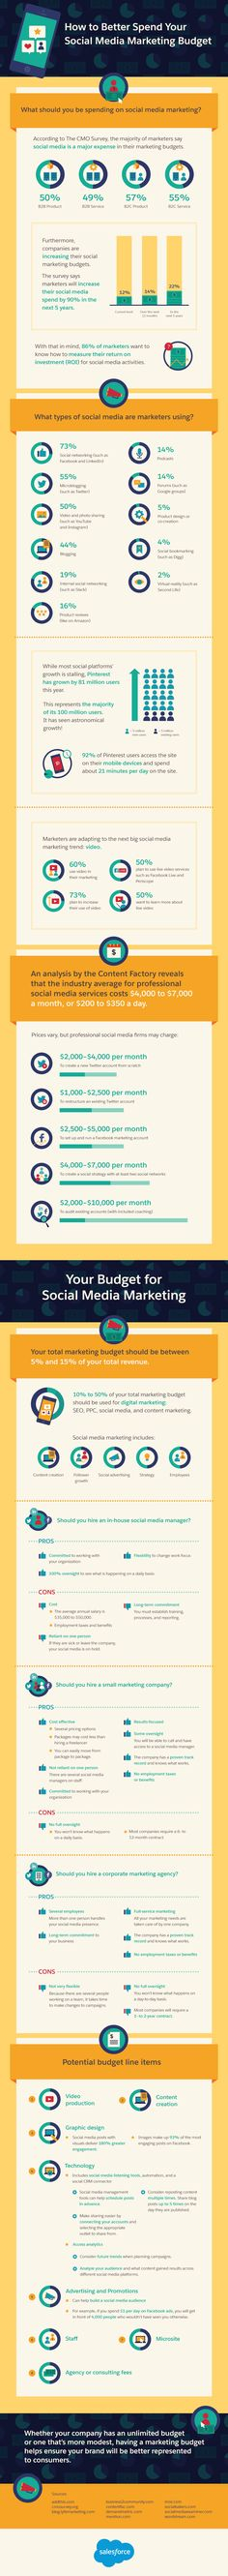 How to Better Spend Your Social Media Marketing Budget (infographic) and an introductory discussion on which social media avenues are worth your time